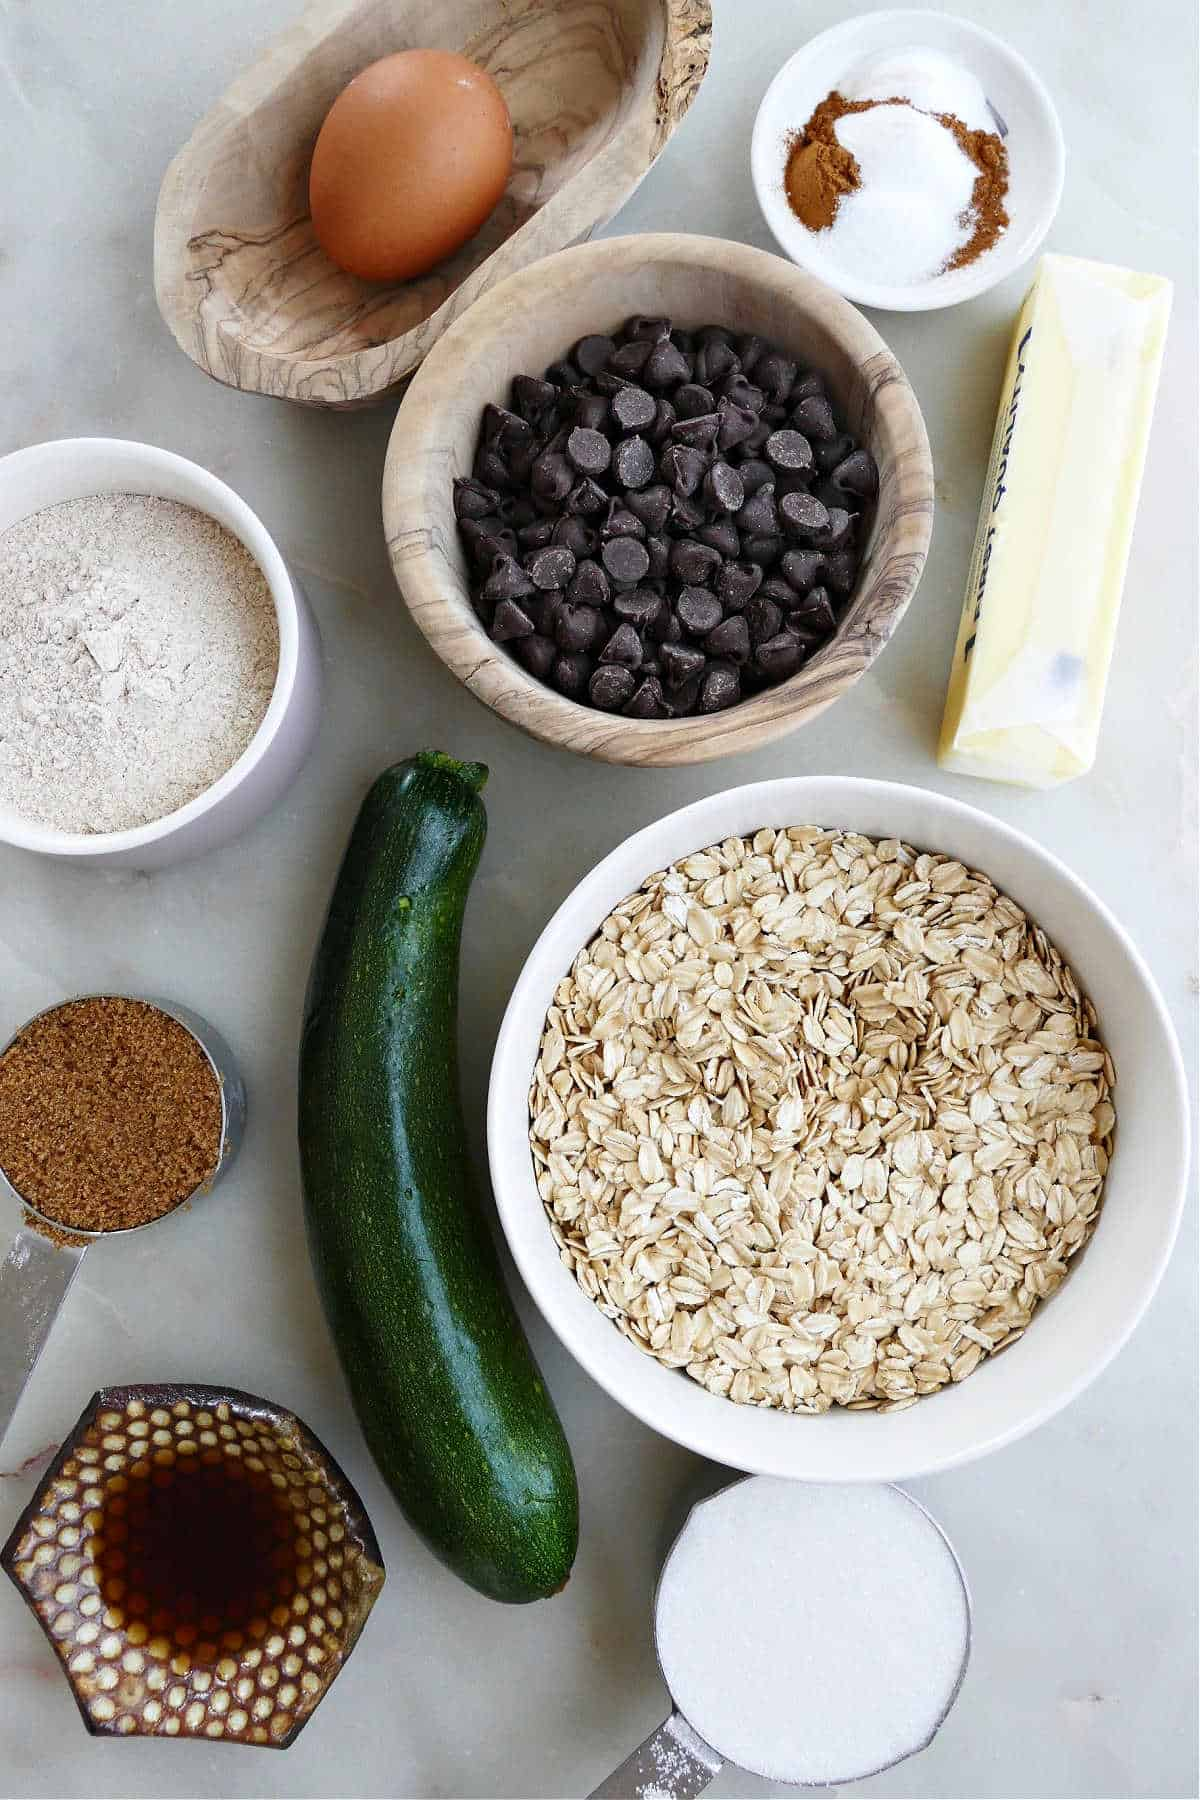 oats, zucchini, chocolate chips, and other ingredients for cookies on a counter